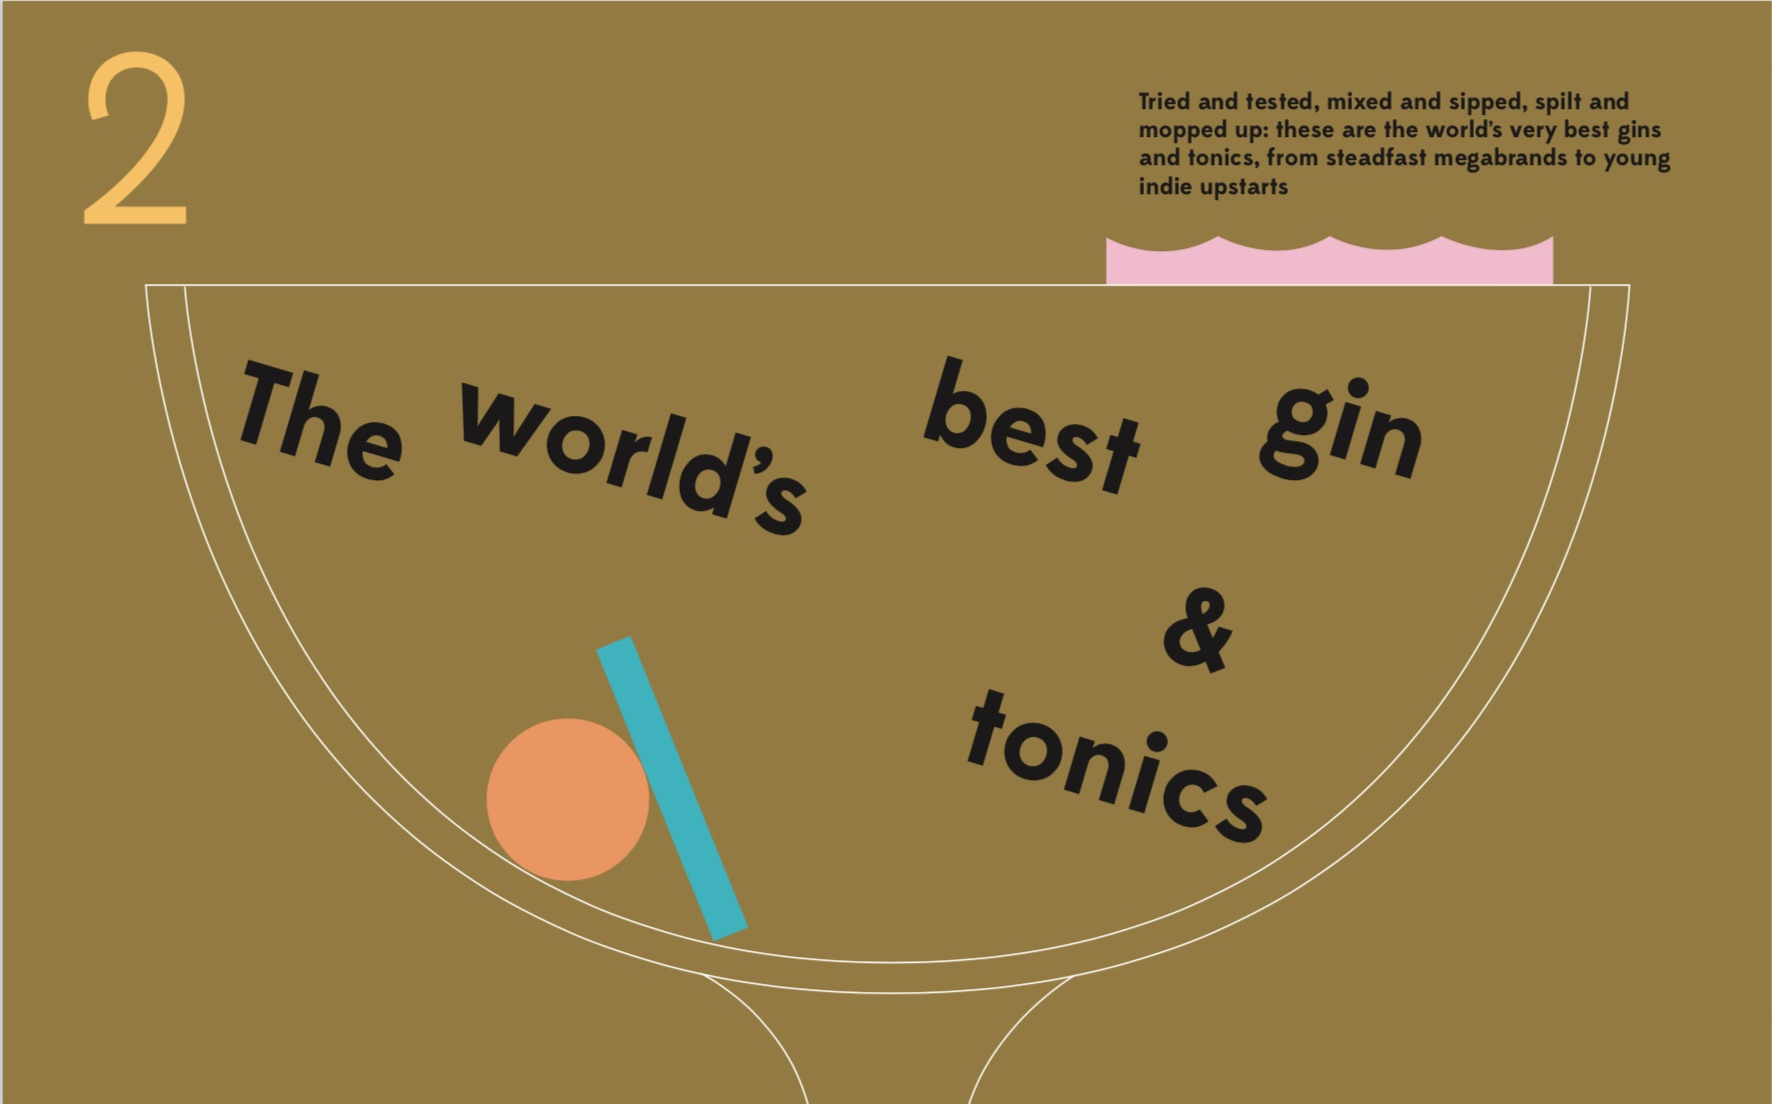 By Dan Jones from Big Book of Gin copyright Hardie Grant Books 2018